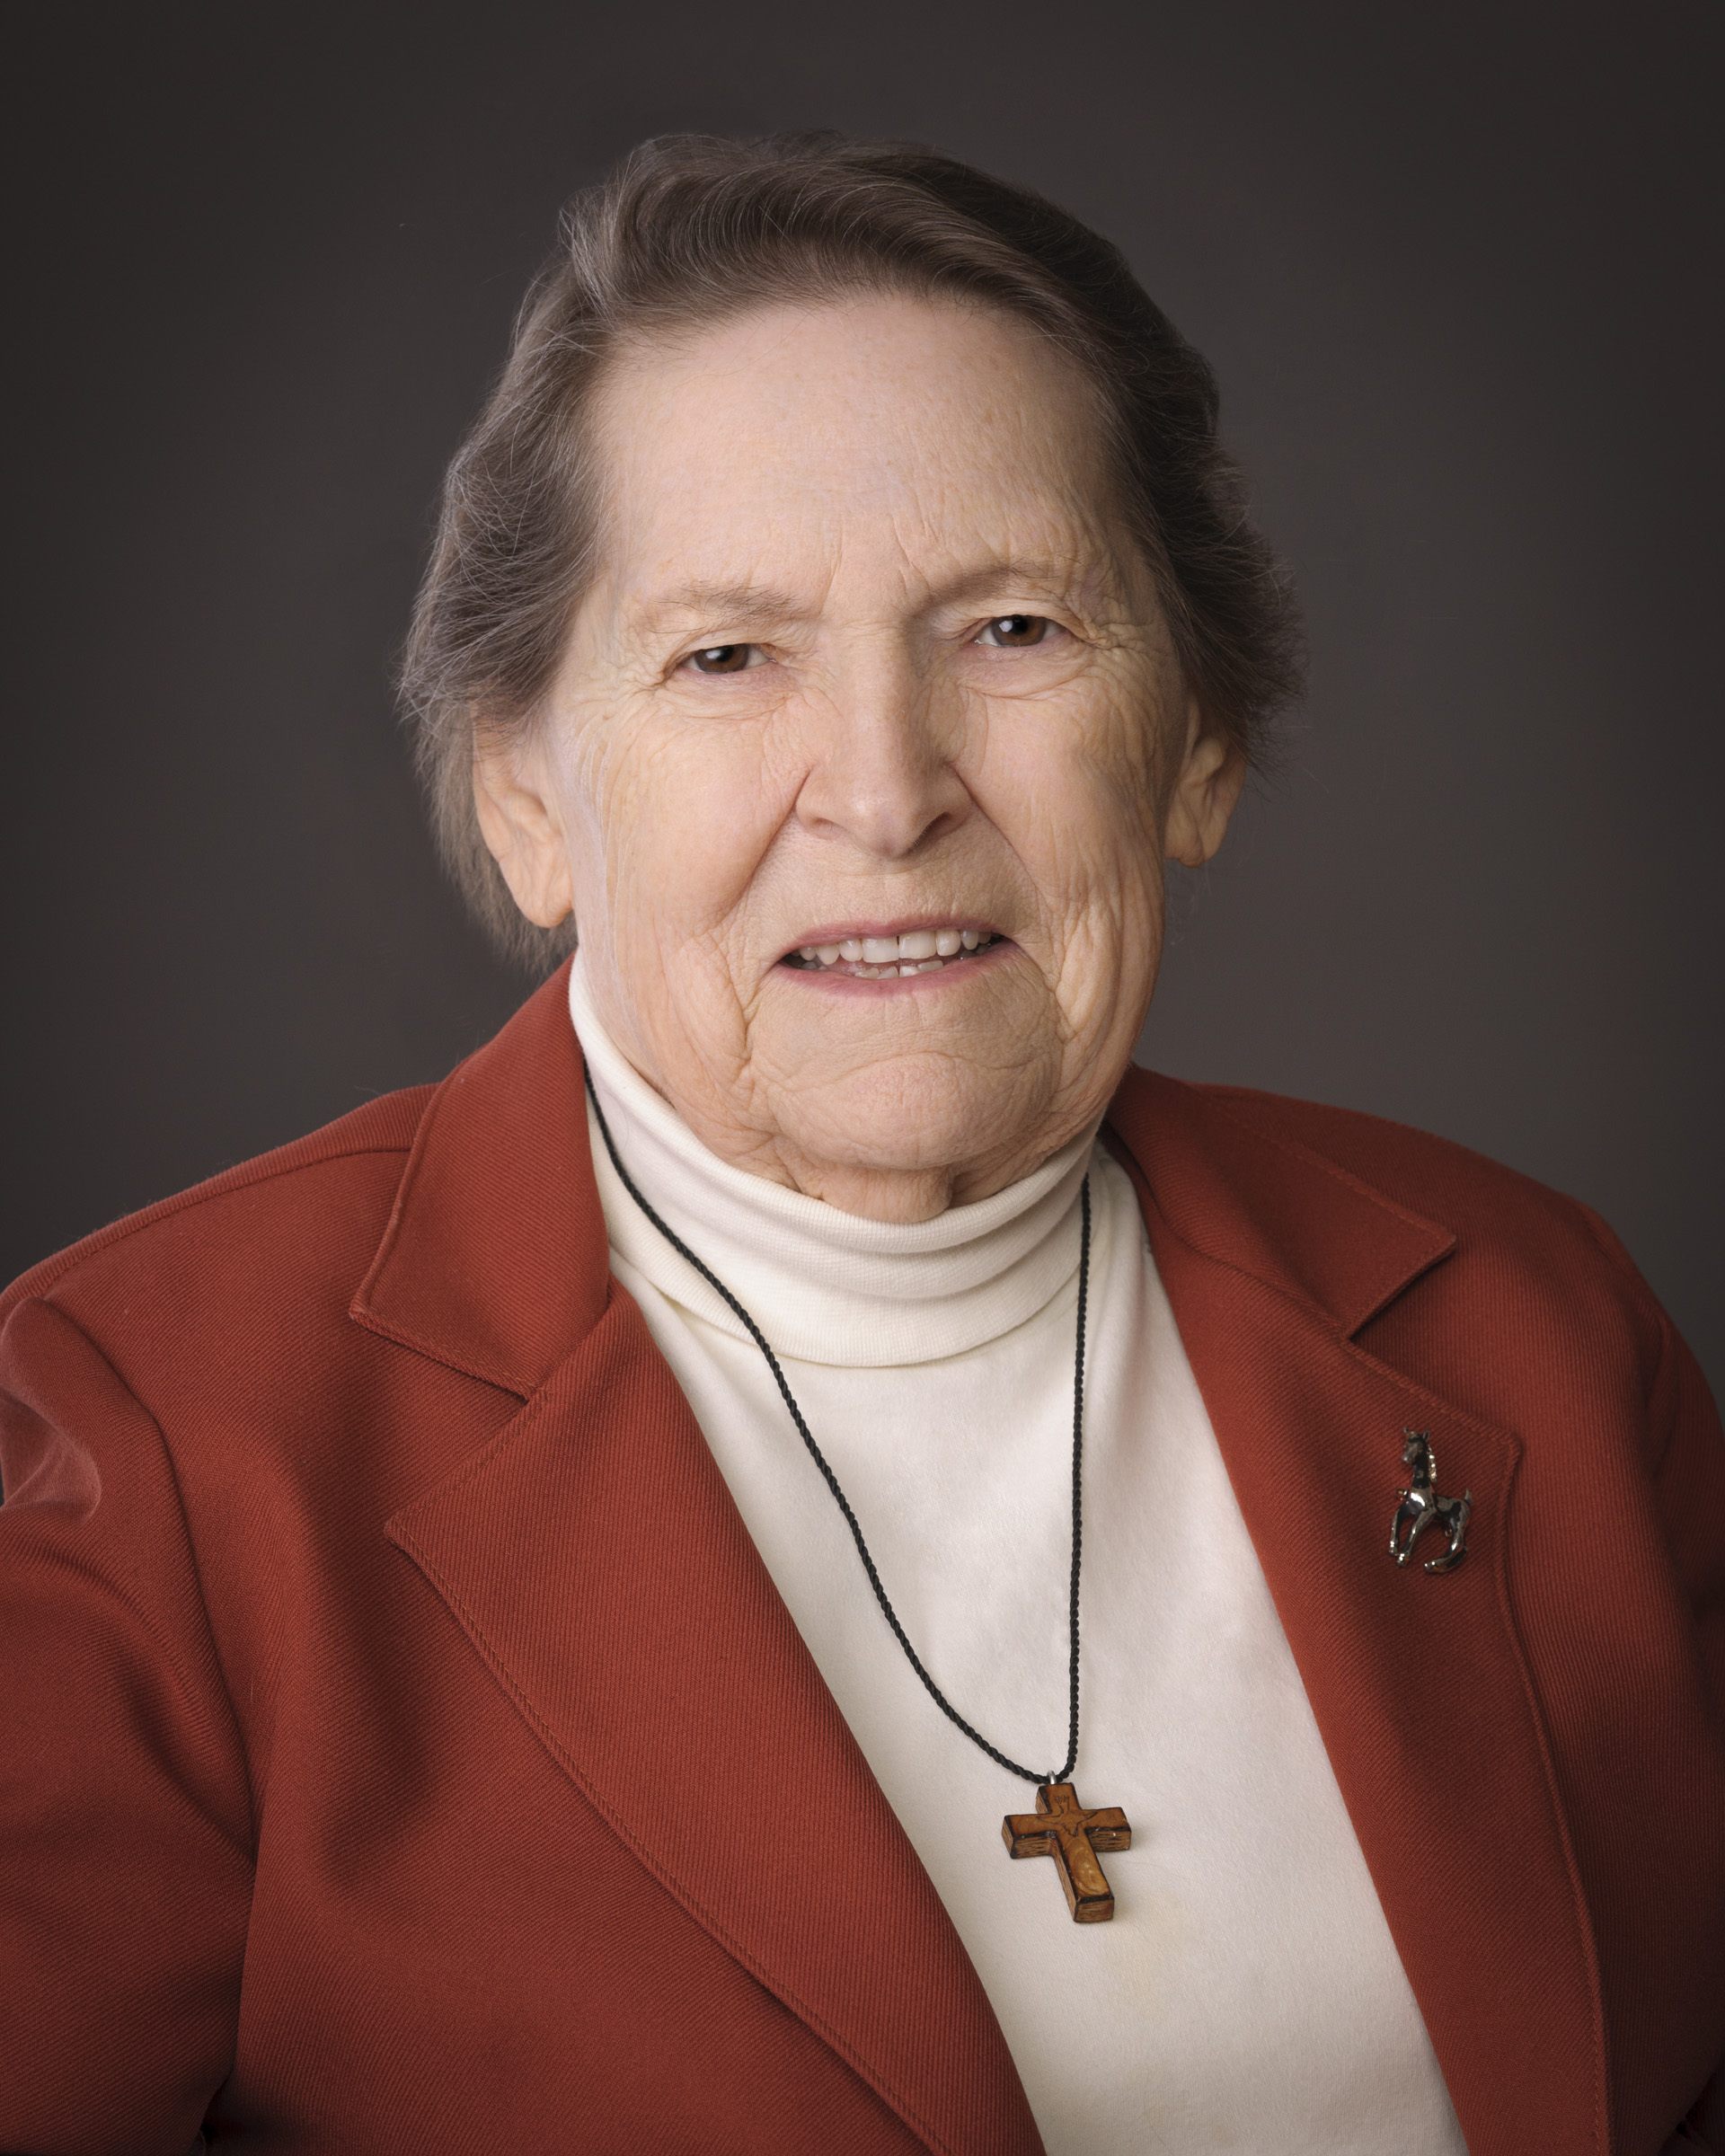 Anne Barton with a red suit jacket and white turtleneck. There is a wooden cross around her neck